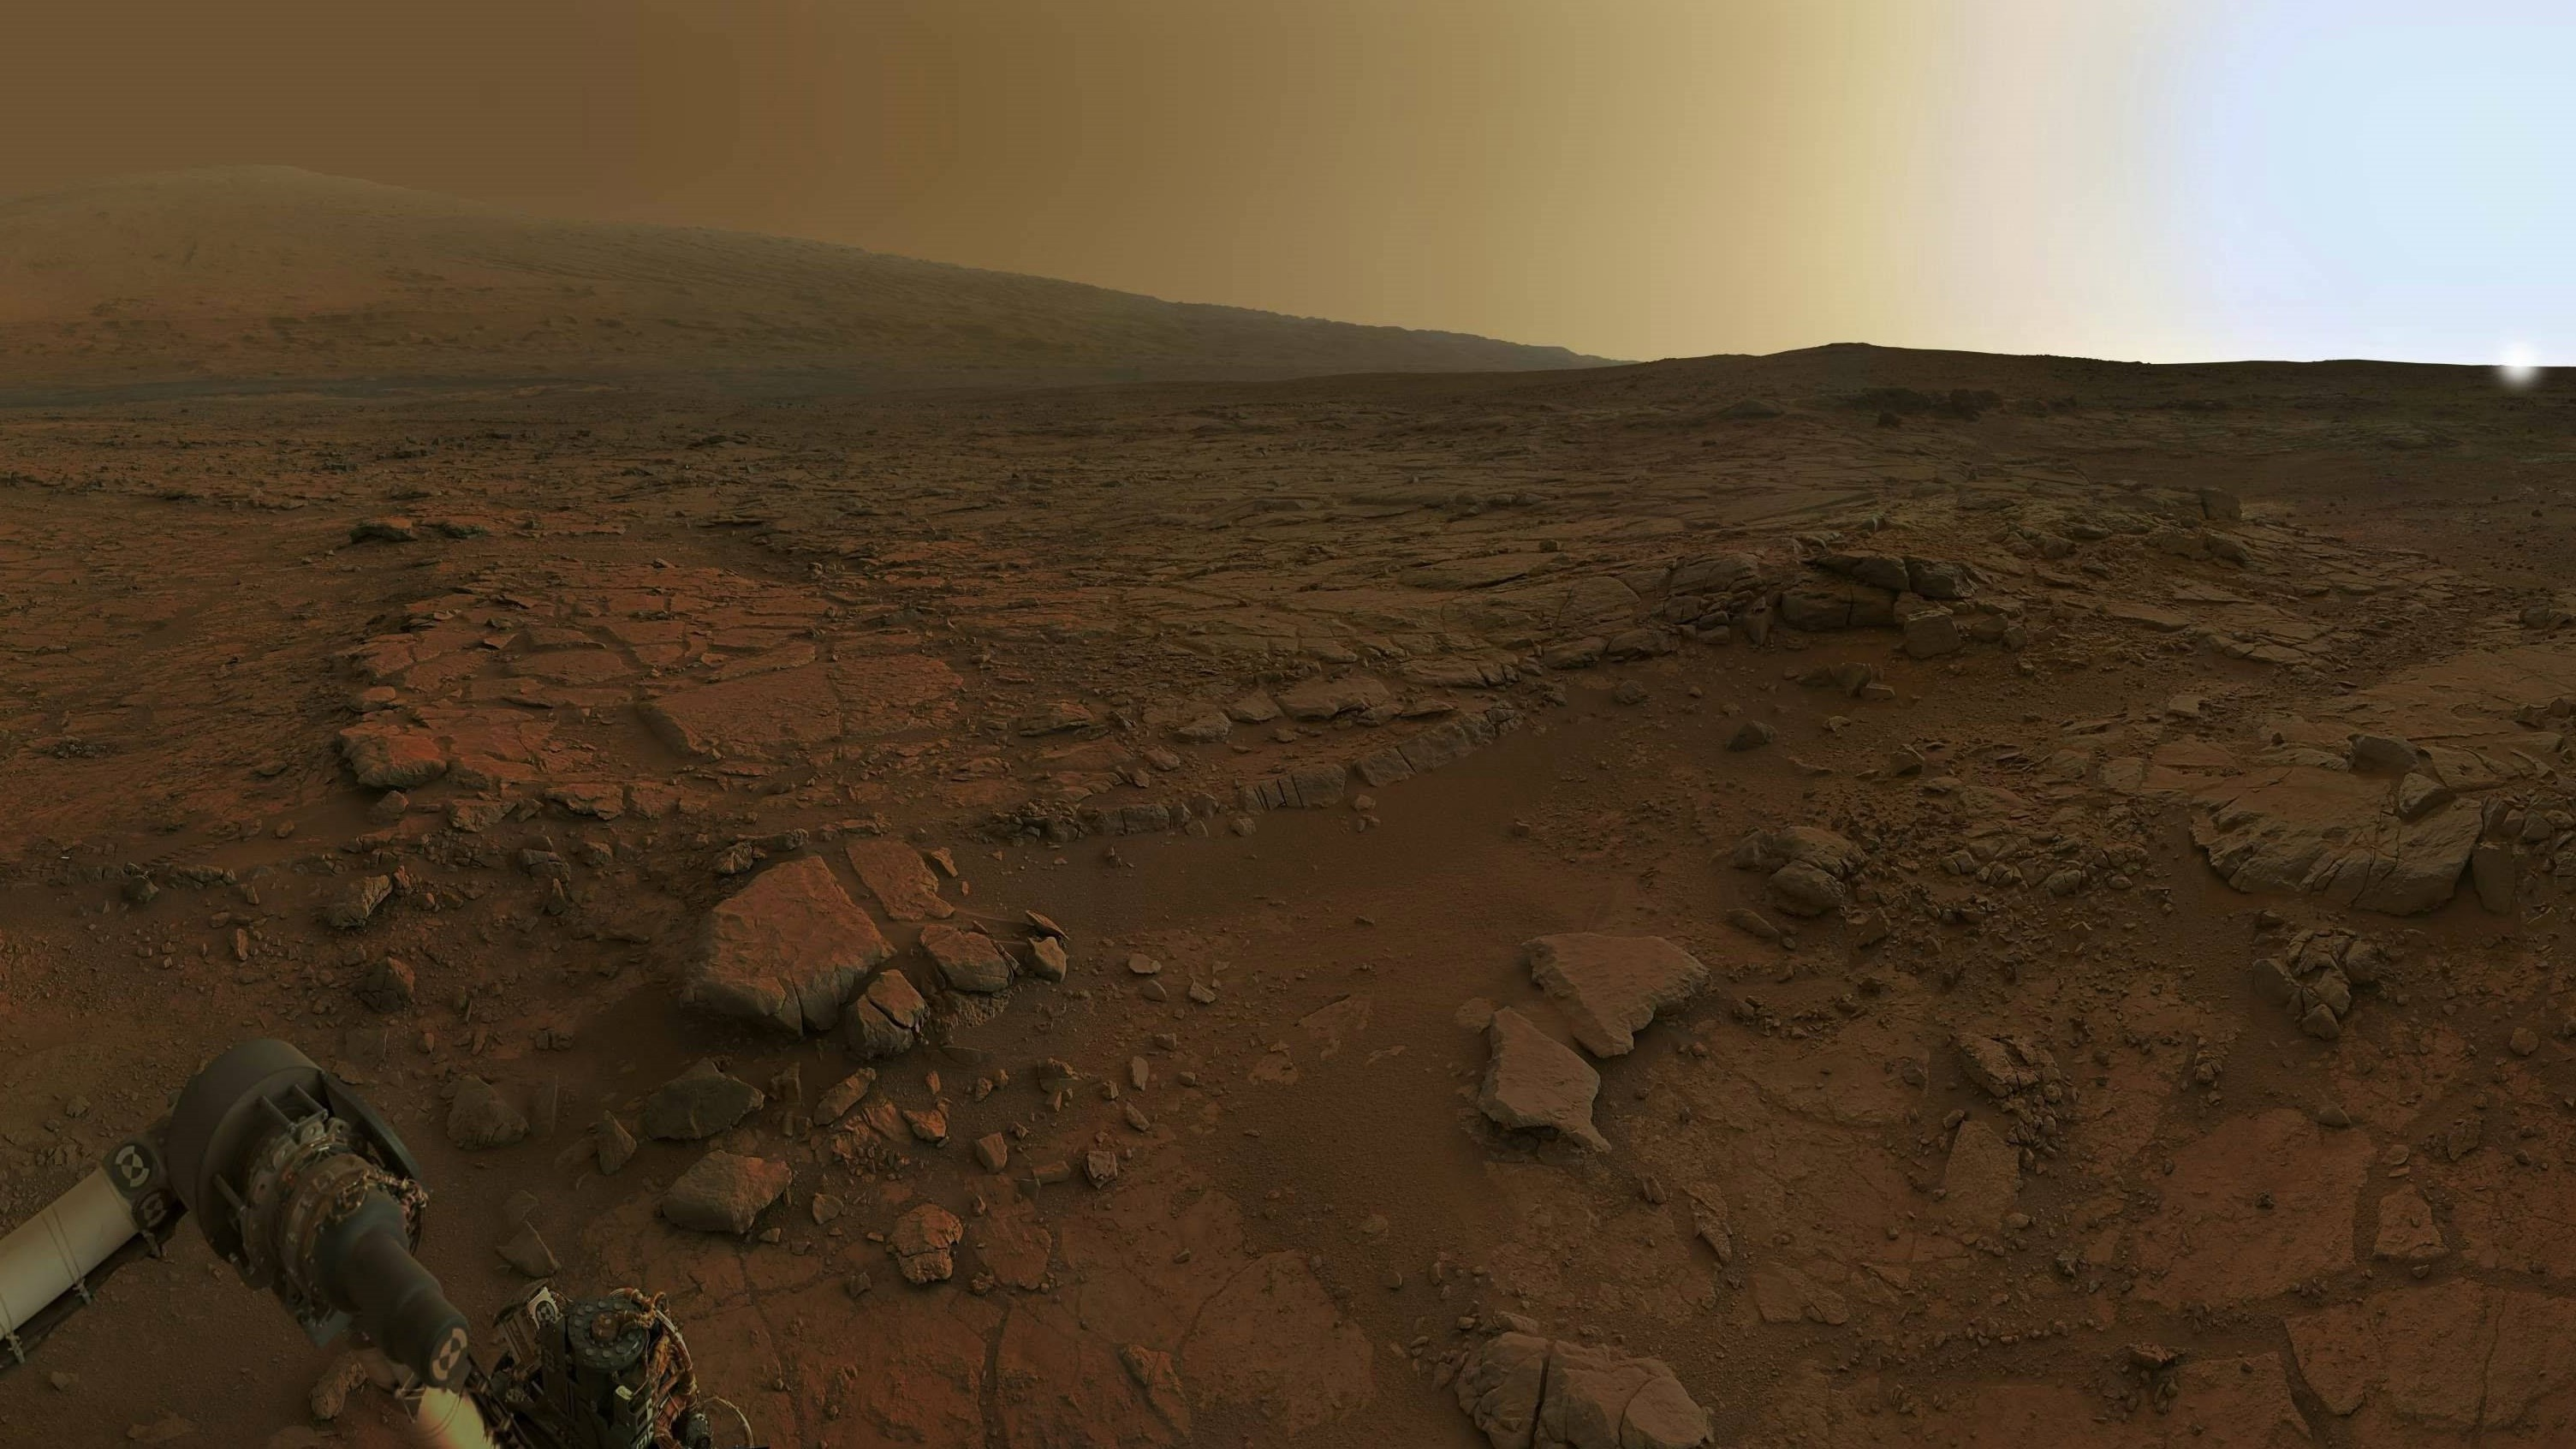 Res: 3009x1692, Mars rover, dawn on Mars, Mars, theme space - download Wallpapers and  Desktop Backgrounds